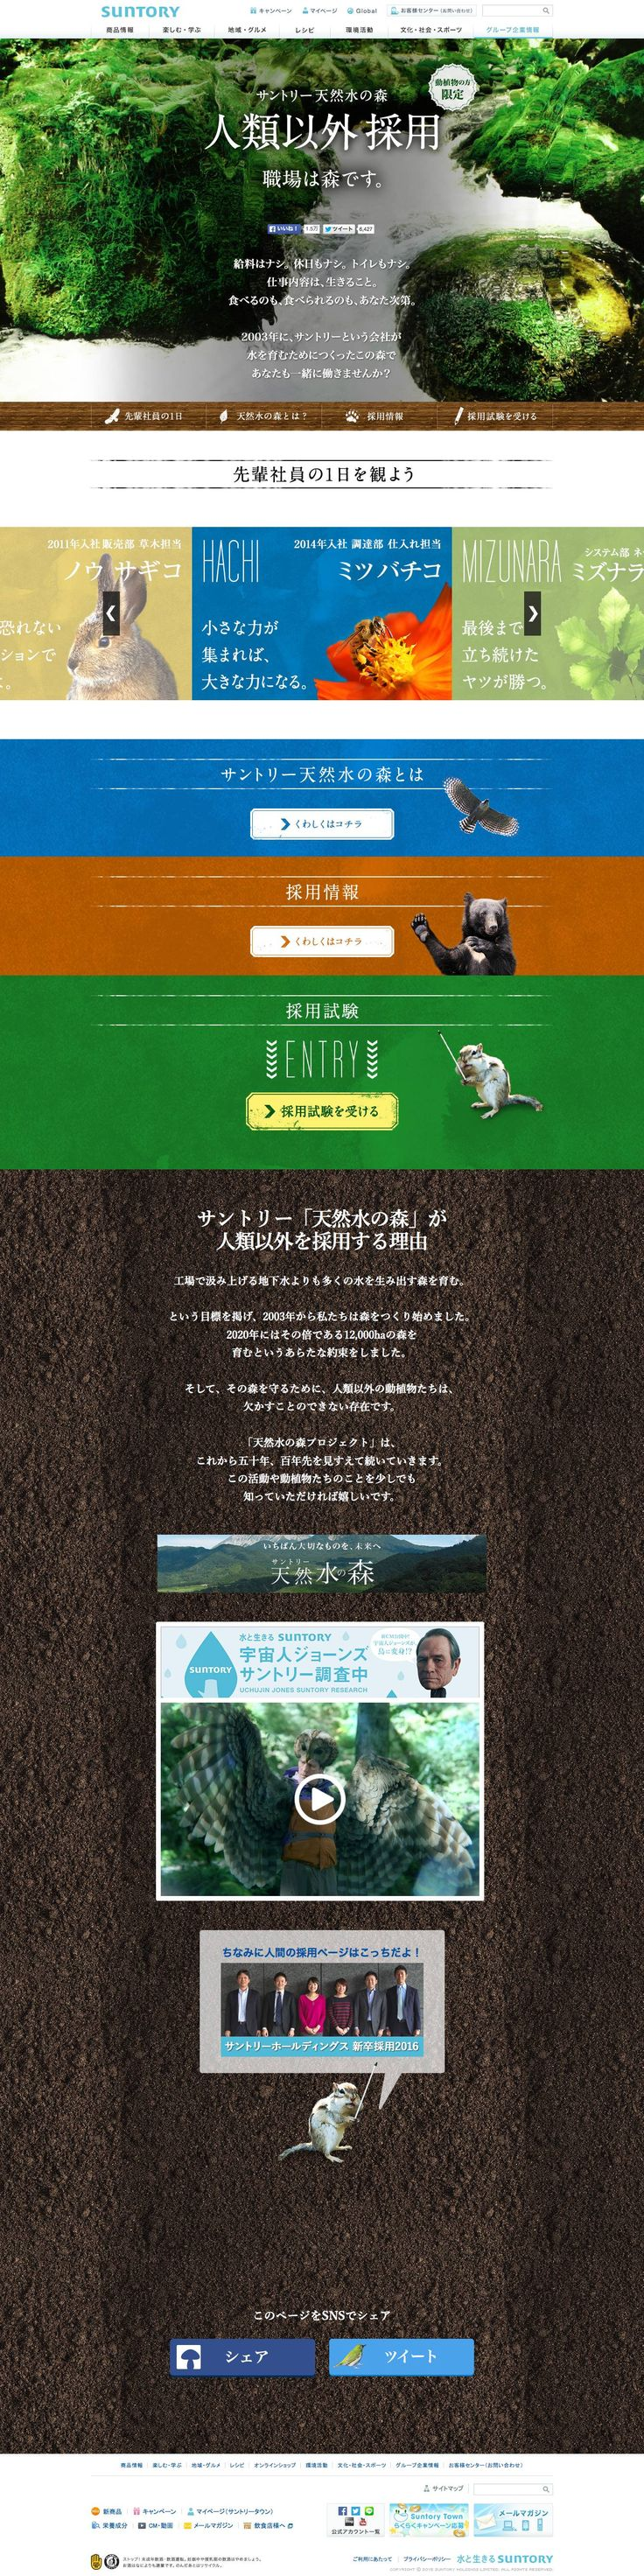 http://www.suntory.co.jp/company/cm/forest-recruit/